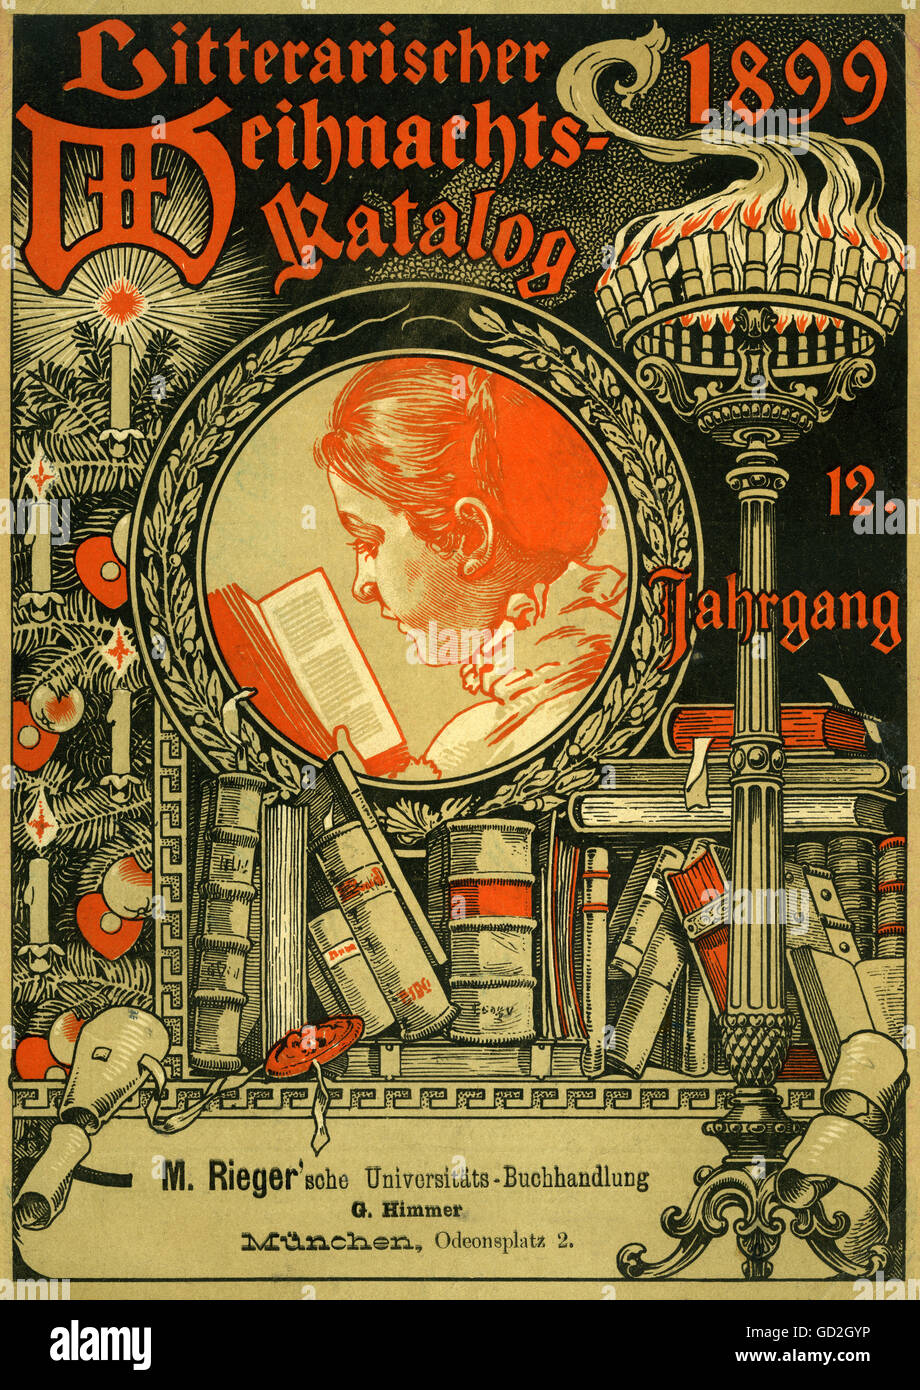 literature, Literary Christmas catalogue 1899, 12th volume, M. Rieger University bookshop, Odeonsplatz 2, Munich, - Stock Image